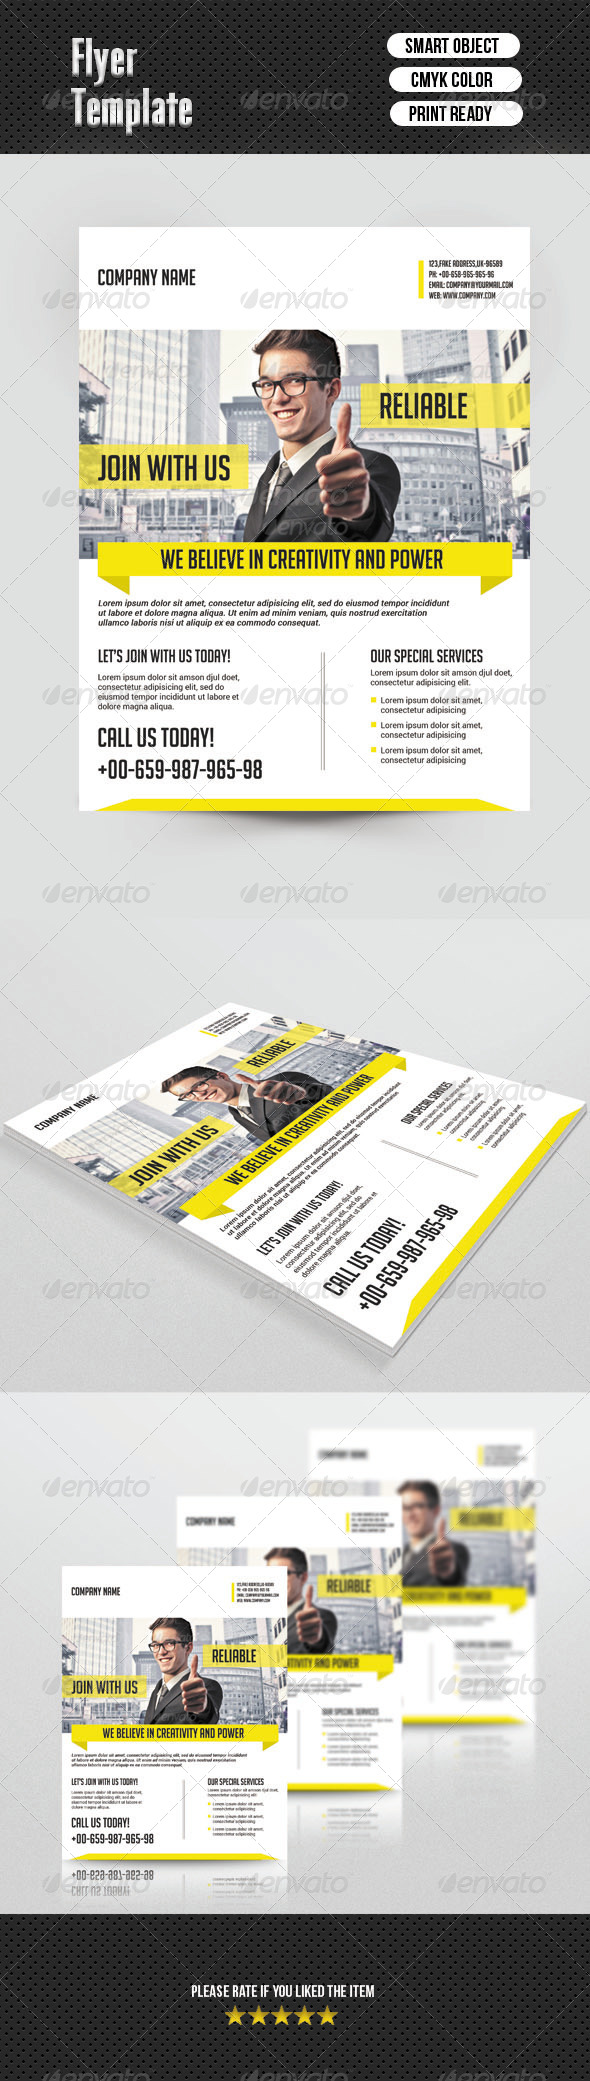 Flyer Template-Business - Corporate Flyers